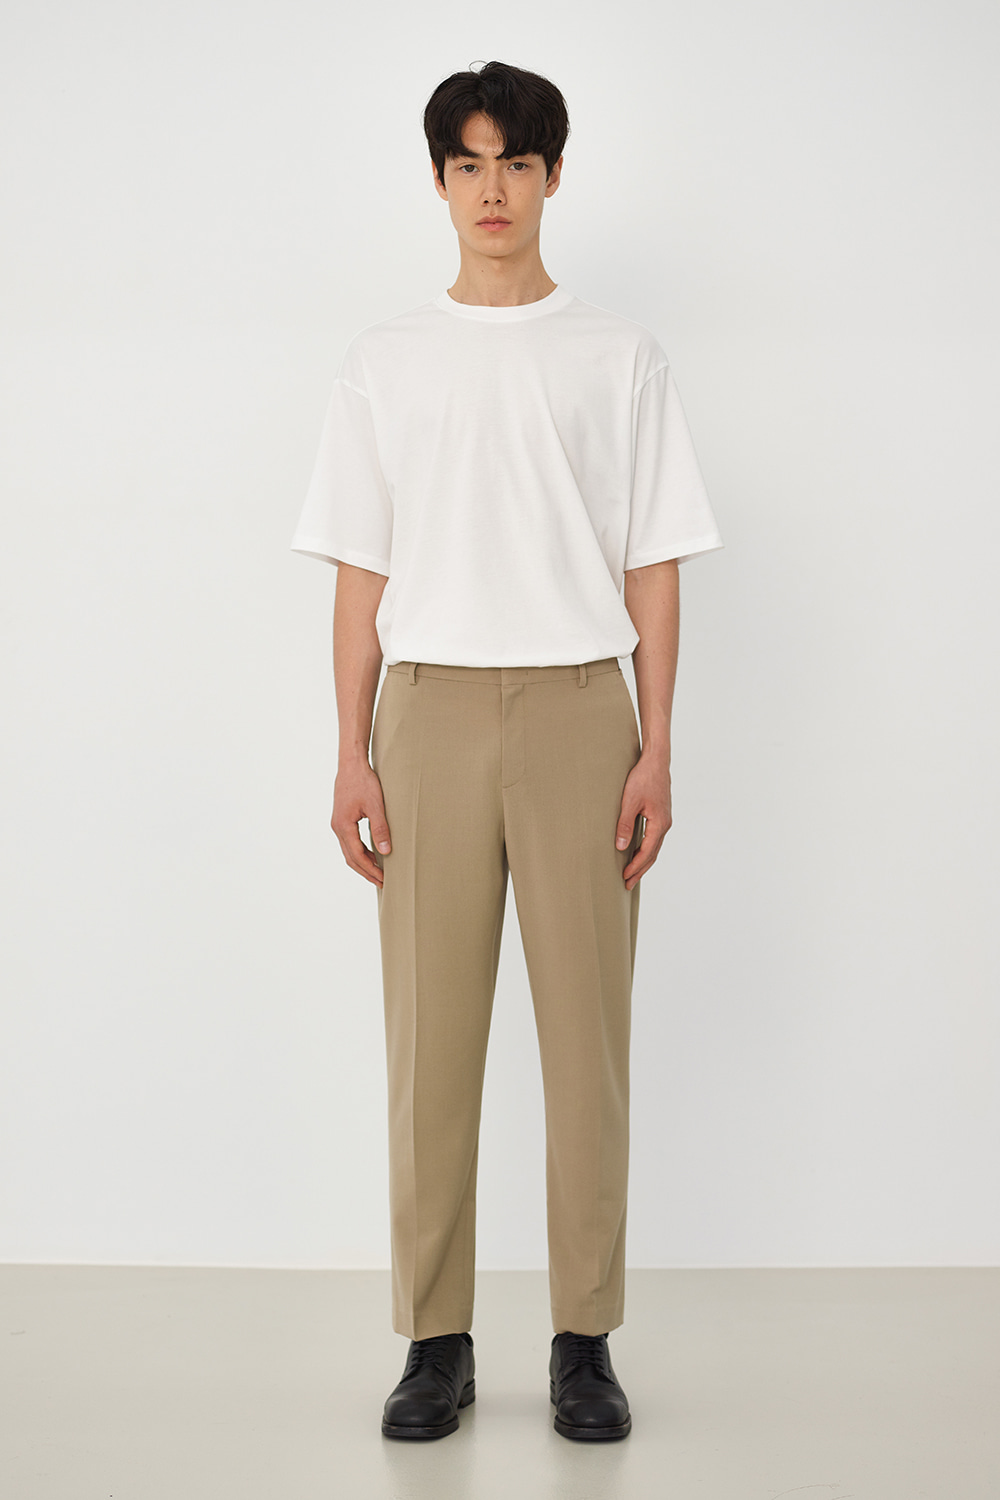 Cool Max Slacks [Beige]